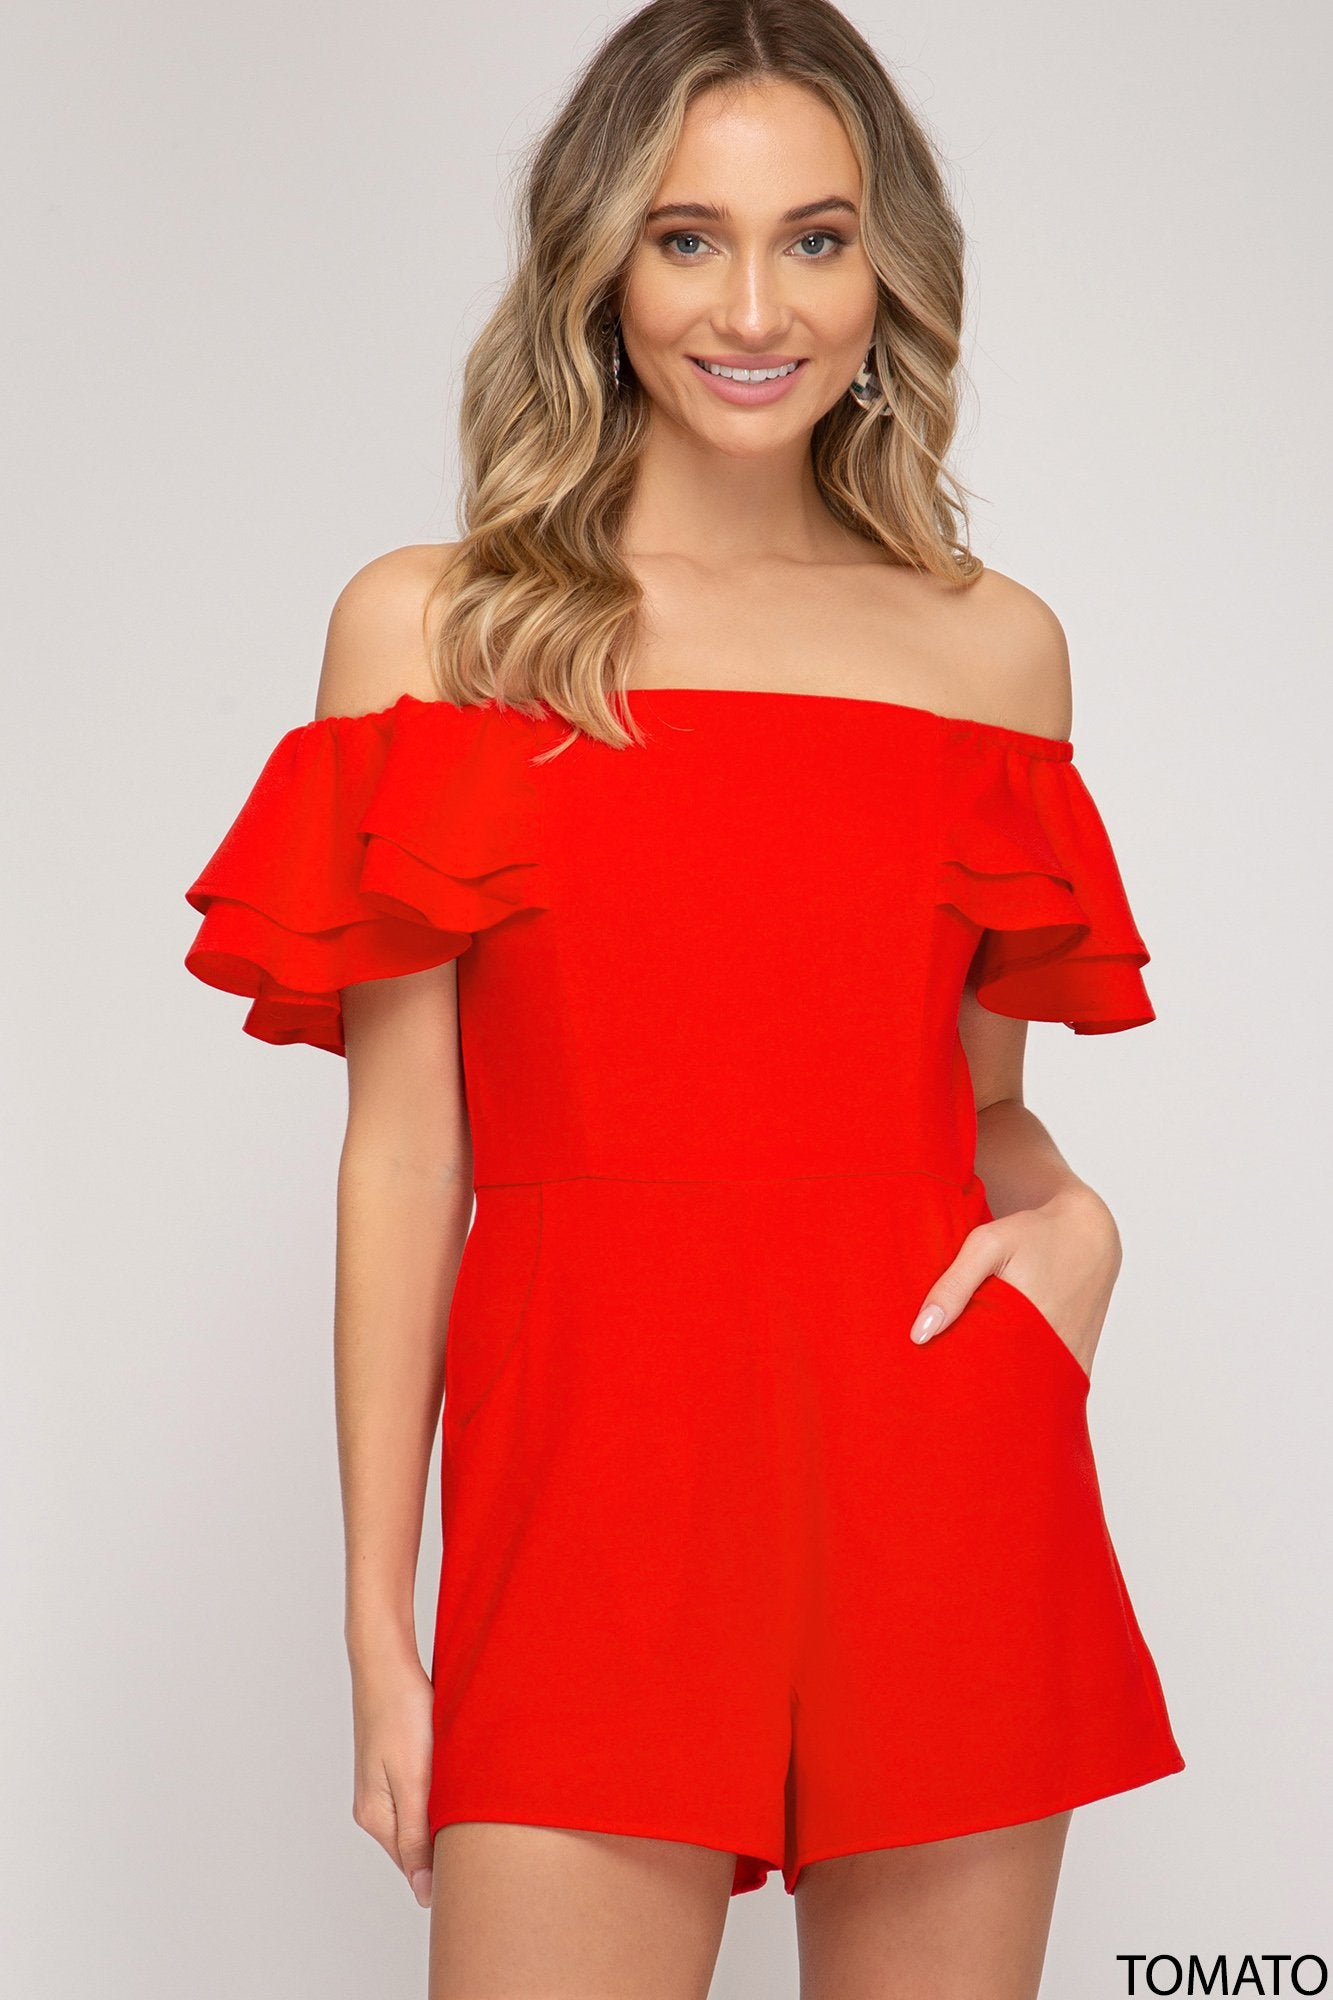 SHE AND SKY Women's Romper TOMATO / S Off Shoulder Romper With Pockets || David's Clothing SS3790